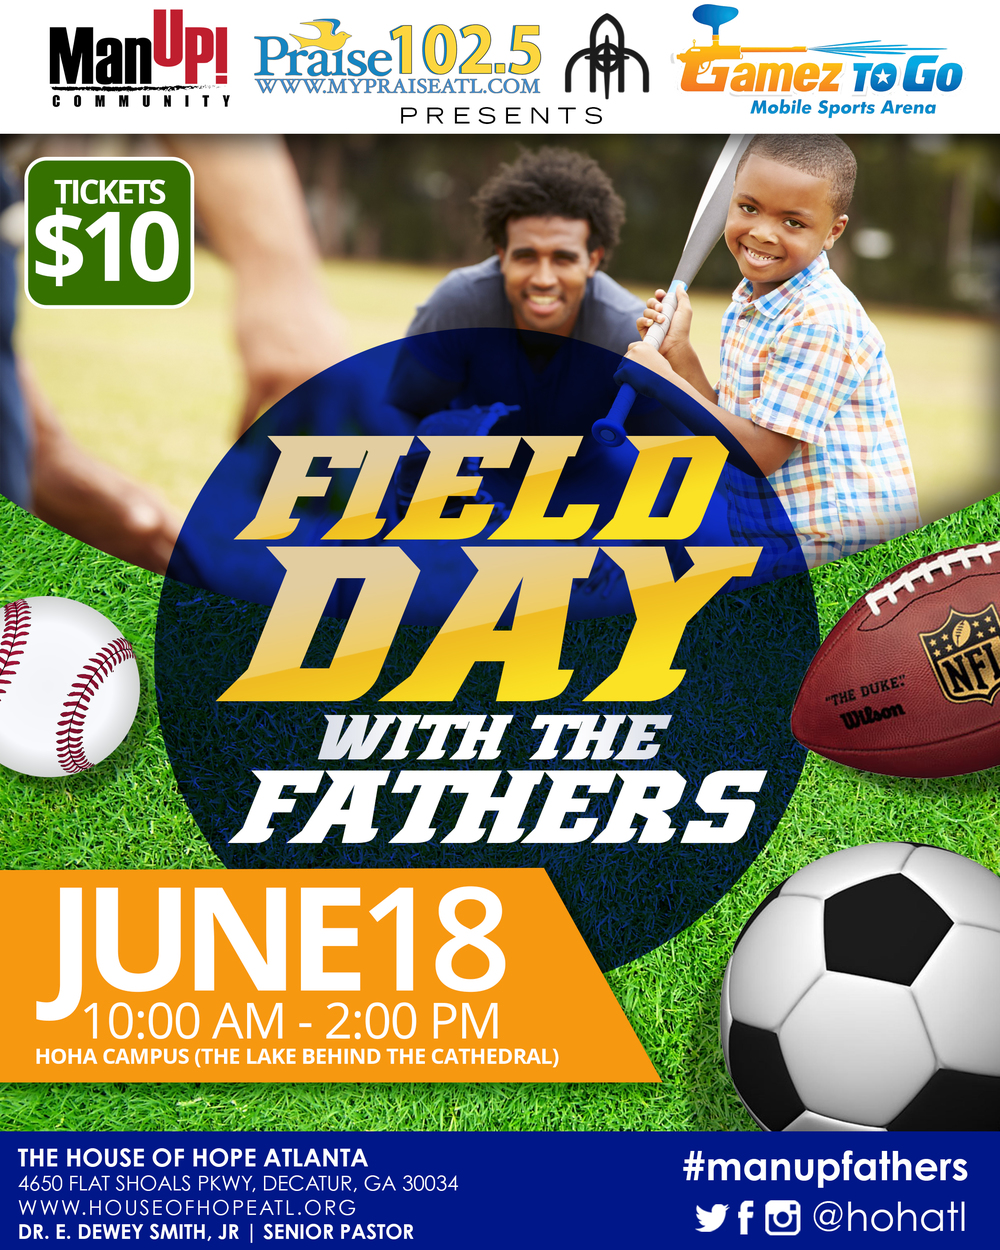 The brothers of ManUP! Community in collaboration with the Men Of Hope of The House Of Hope Atlanta are proud to present 'Field Day with Fathers'. Join us for a fun filled day featuring fishing, field day games, children's activities, food and more.  The primary goal is to provide an opportunity for Father's to enjoy a fun filled day of activities with their children and other youth from the community who may not have an active positive male in their lives.  This fellowship activity takes place June 18, 2016 from 10:00 a.m.to 2:00 p.m.  Hurry though! Slots are limited so don't wait get your tickets. Click the link below to secure the slot for you (men only) and your child (male or female). Tickets are $10 per person.   BUY TICKETS